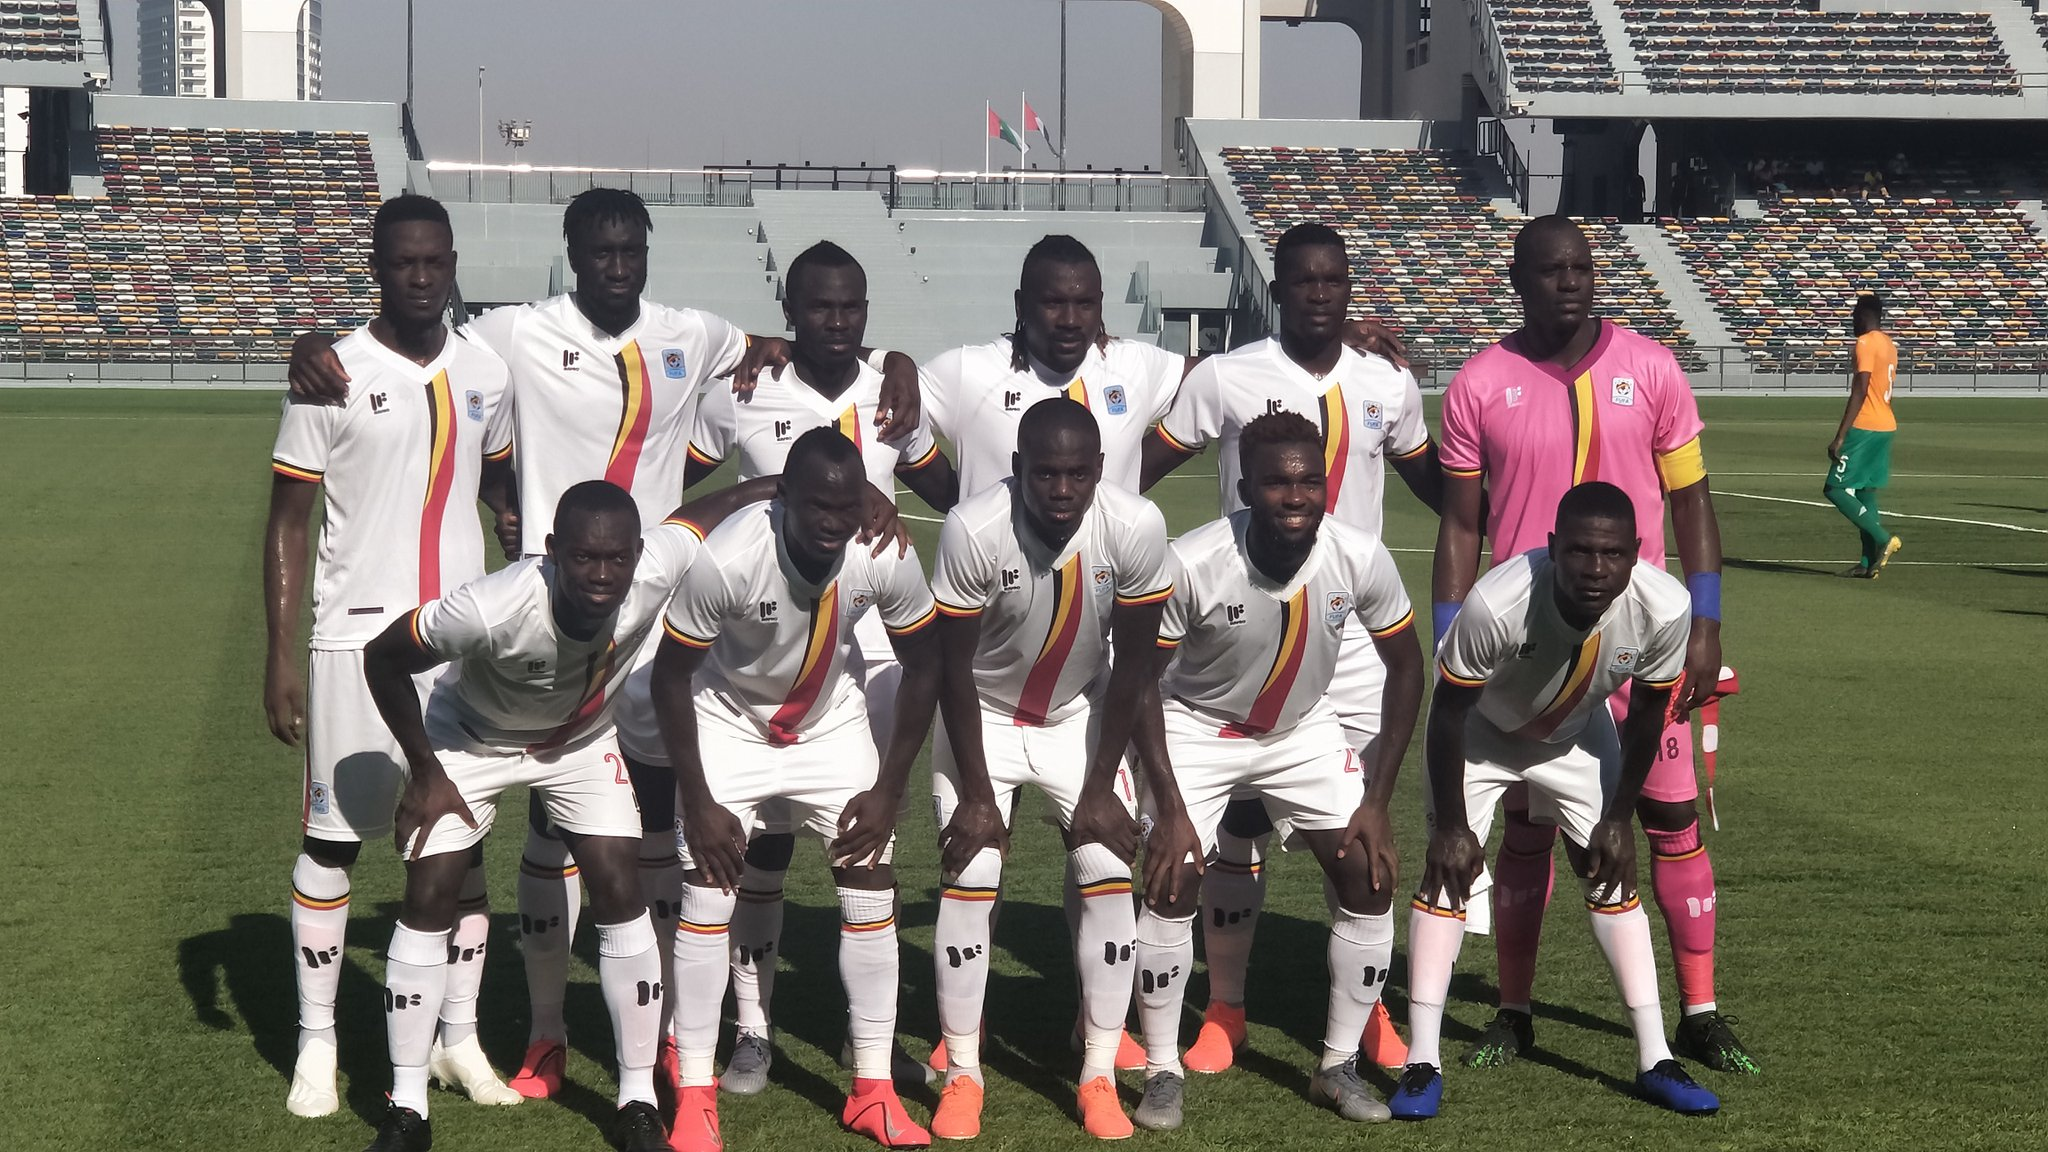 The win on Saturday was Uganda's first at AFCON in 41 years.